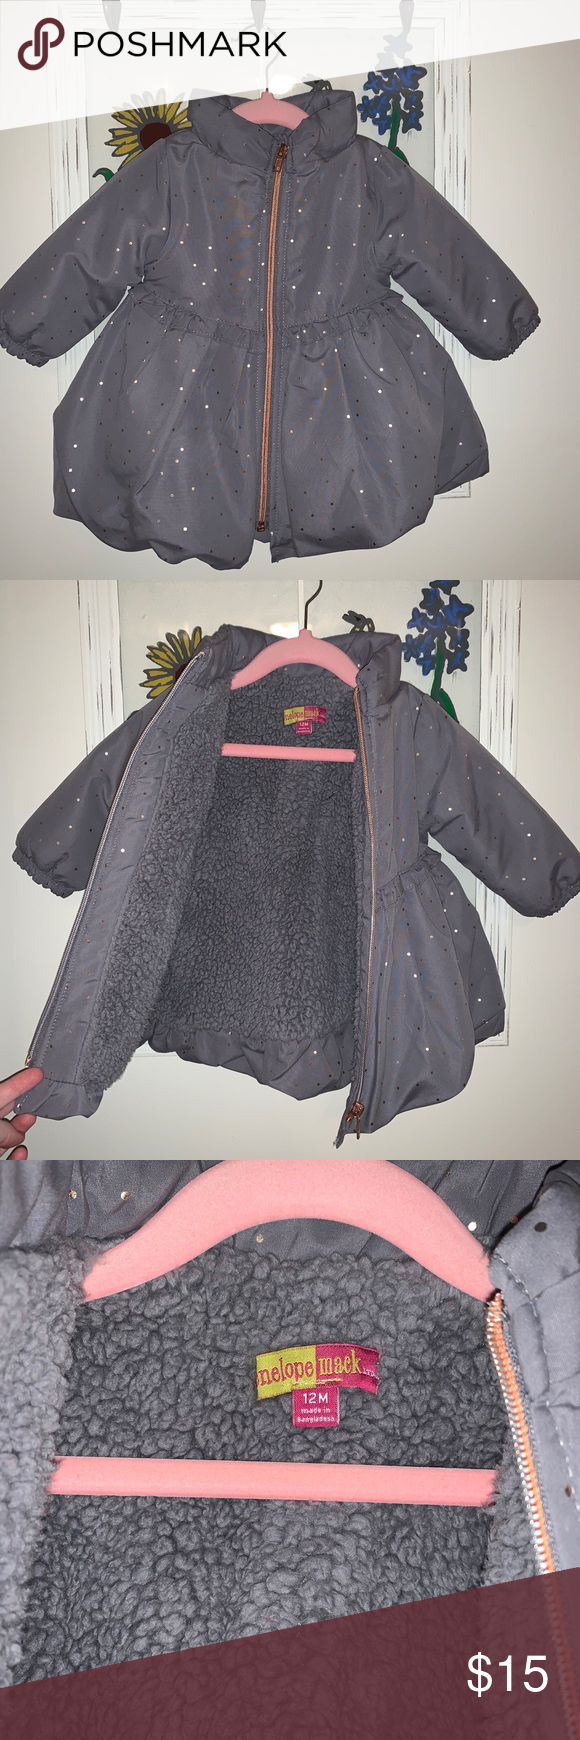 Baby Girl Puffy Winter Coat Beautiful dark gray with gold polka dots tailored pu…